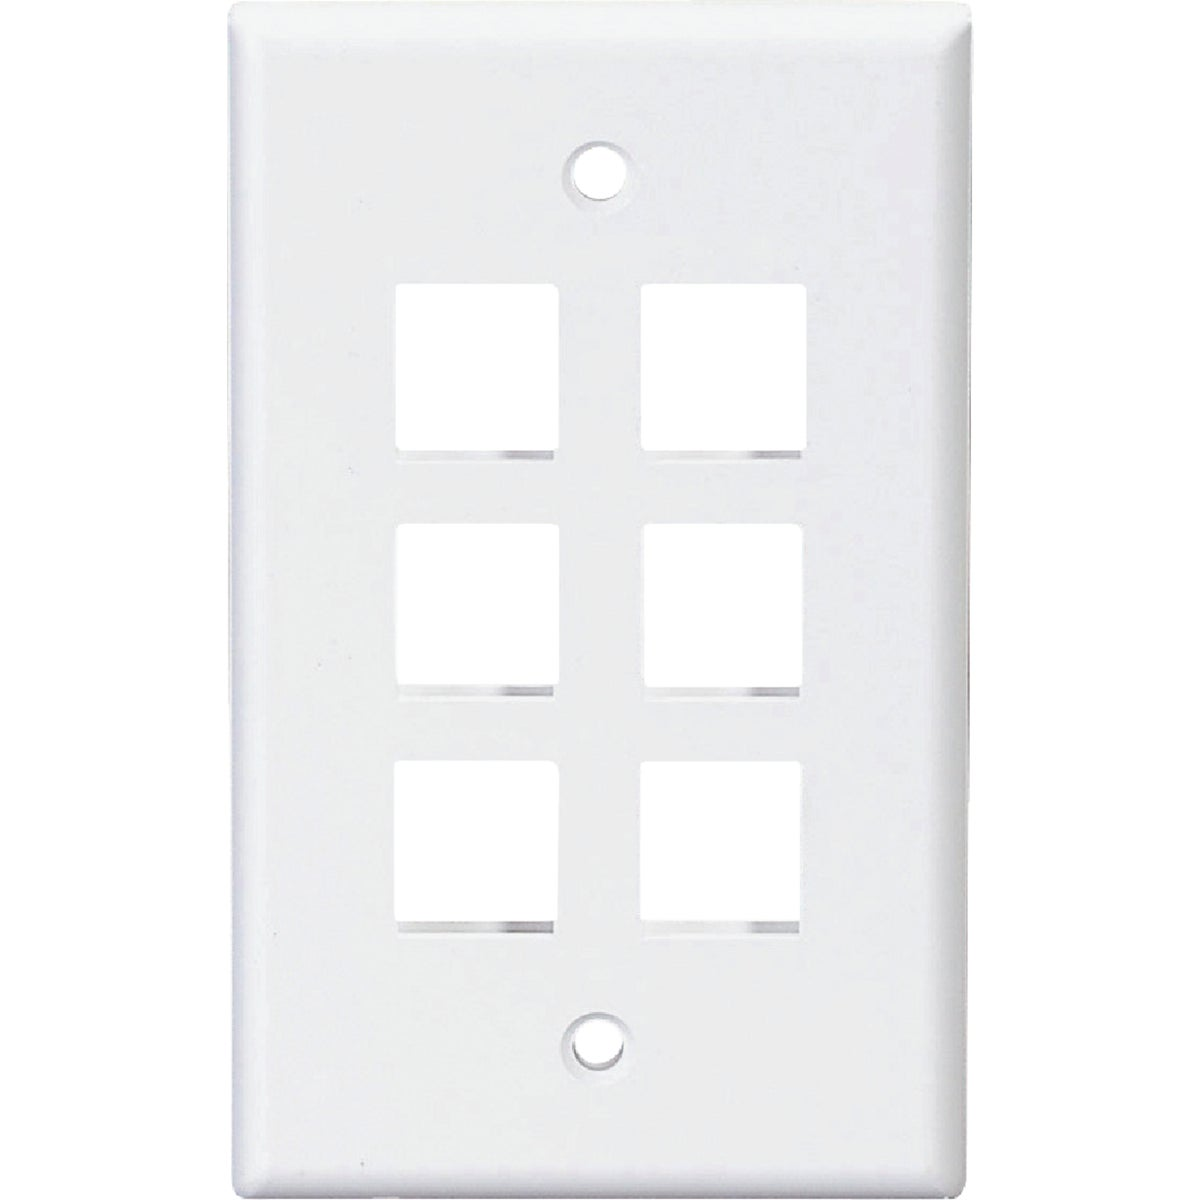 6-PORT WALL PLATE